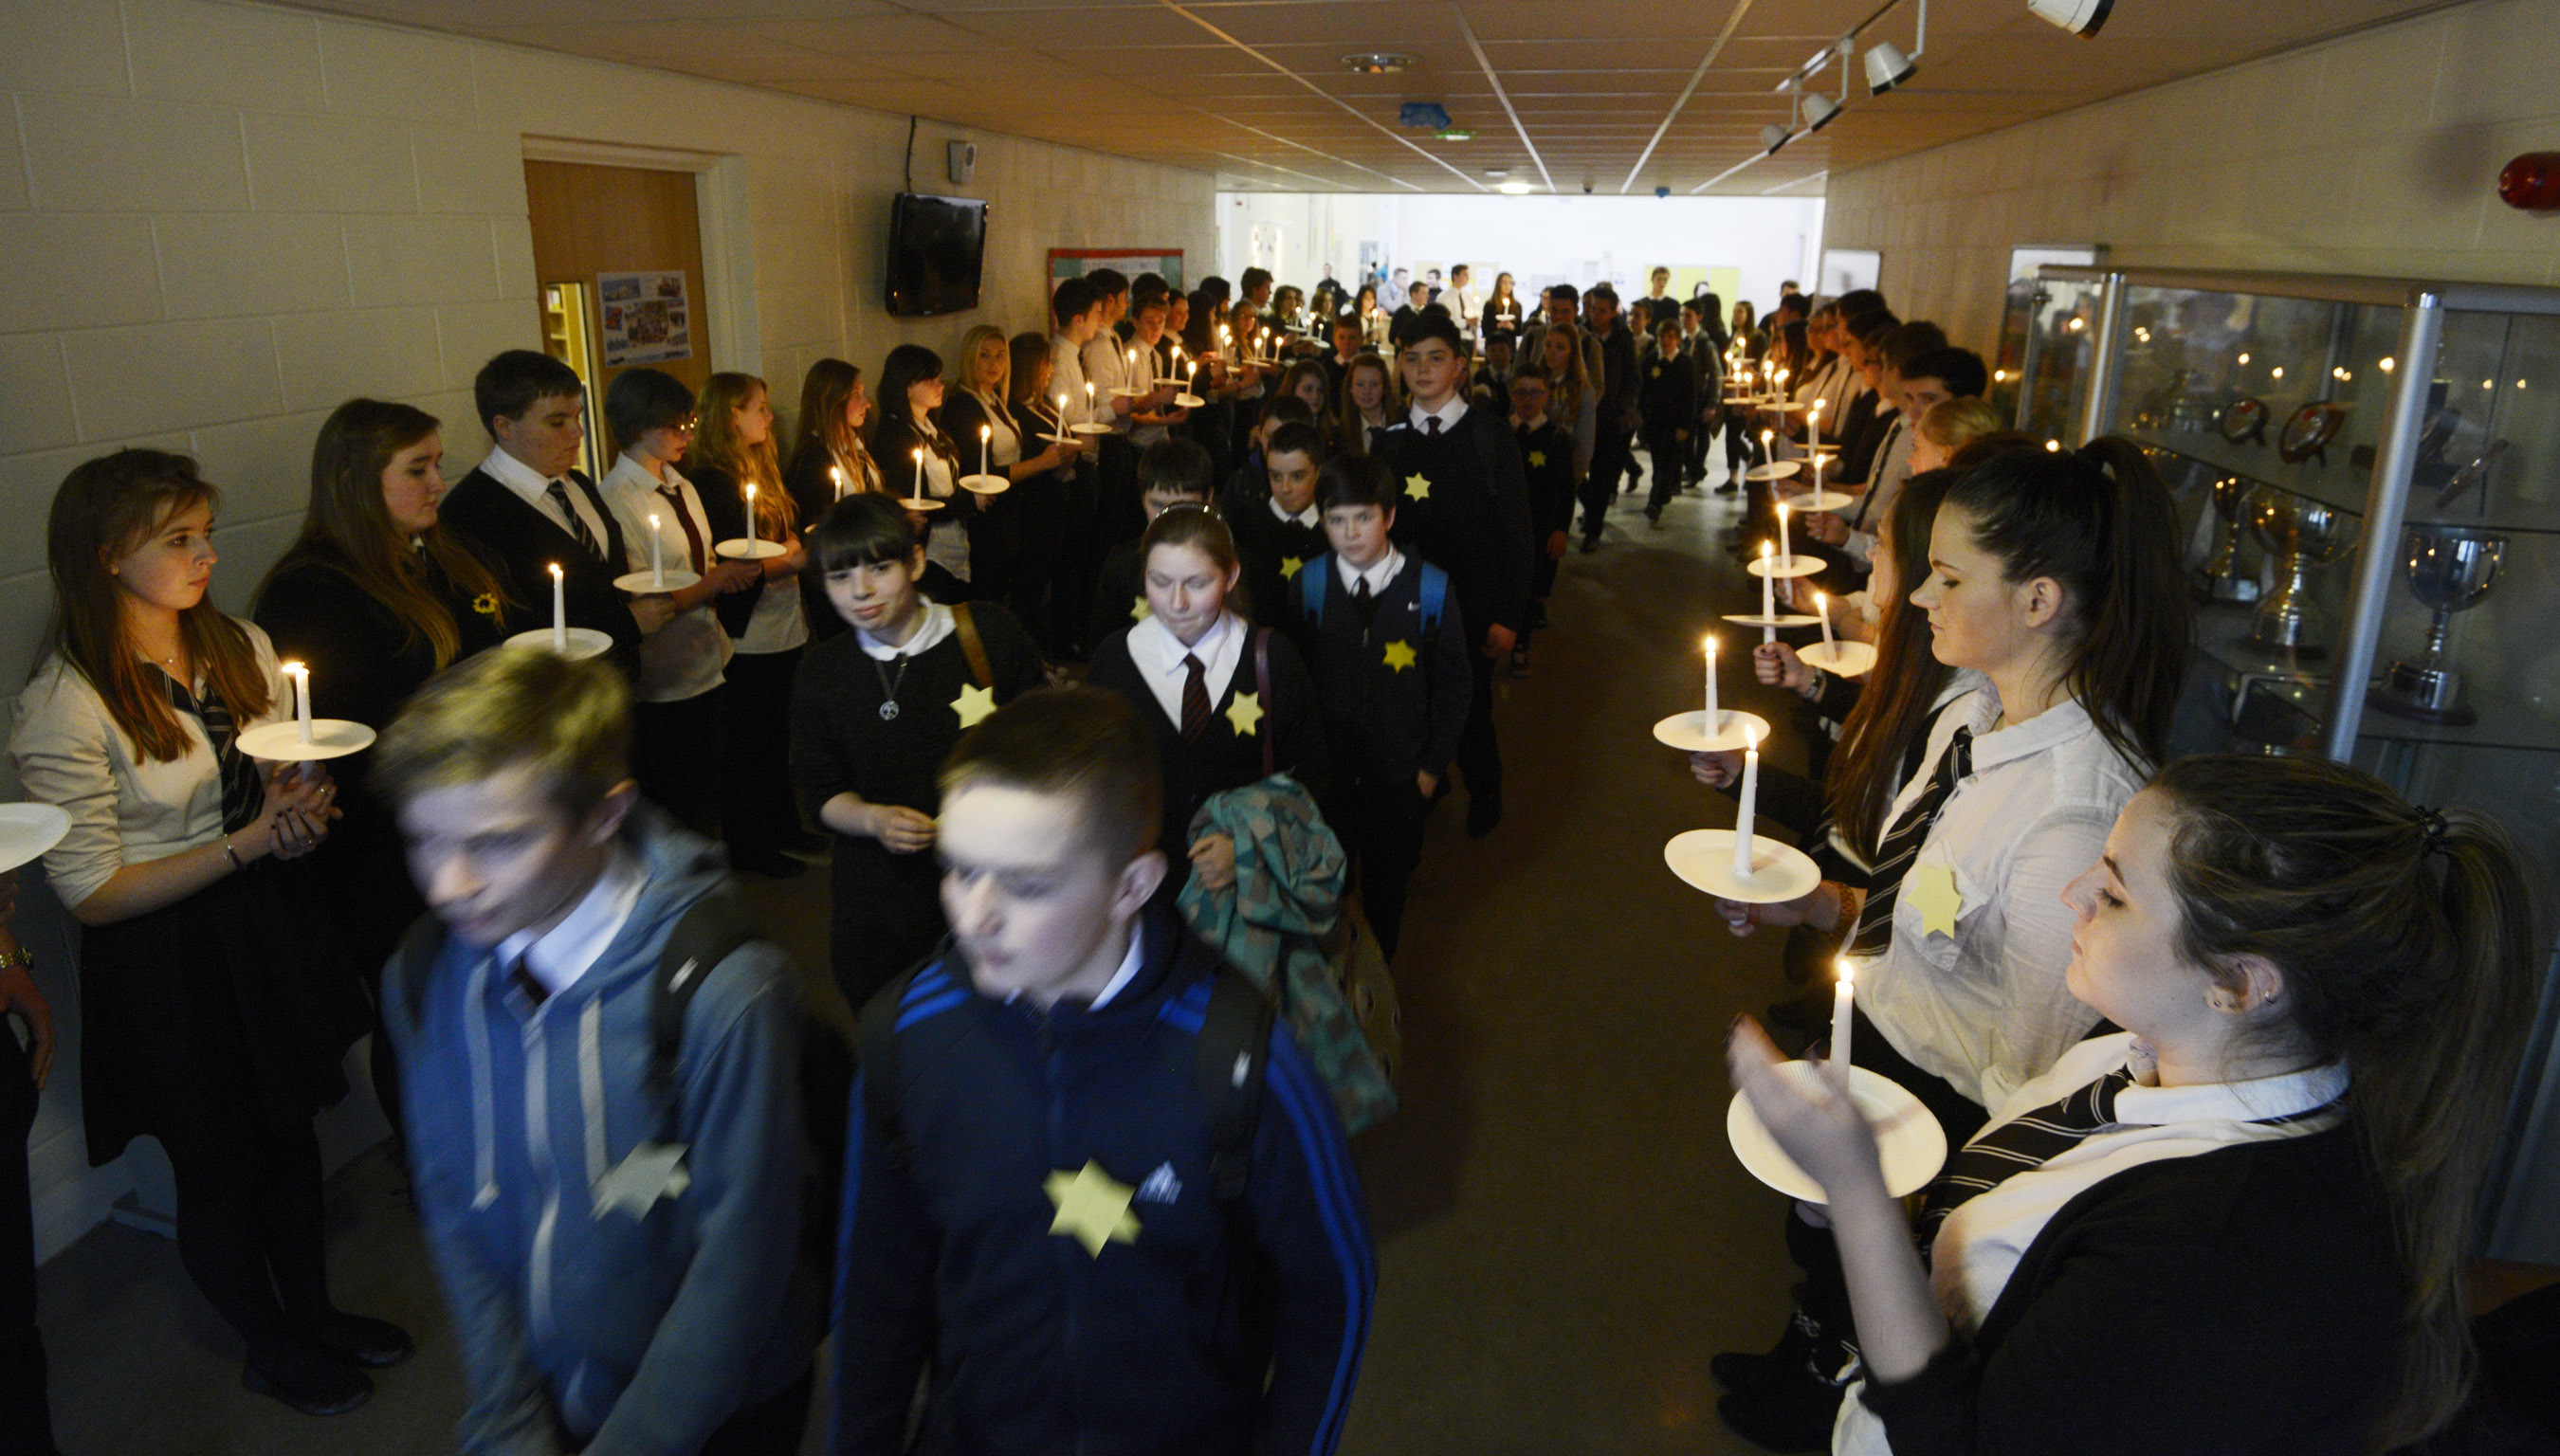 Lochaber High School pupils left the school in silence passing between sixth form students holding candles to mark the liberation of Auschwitz 70 years ago